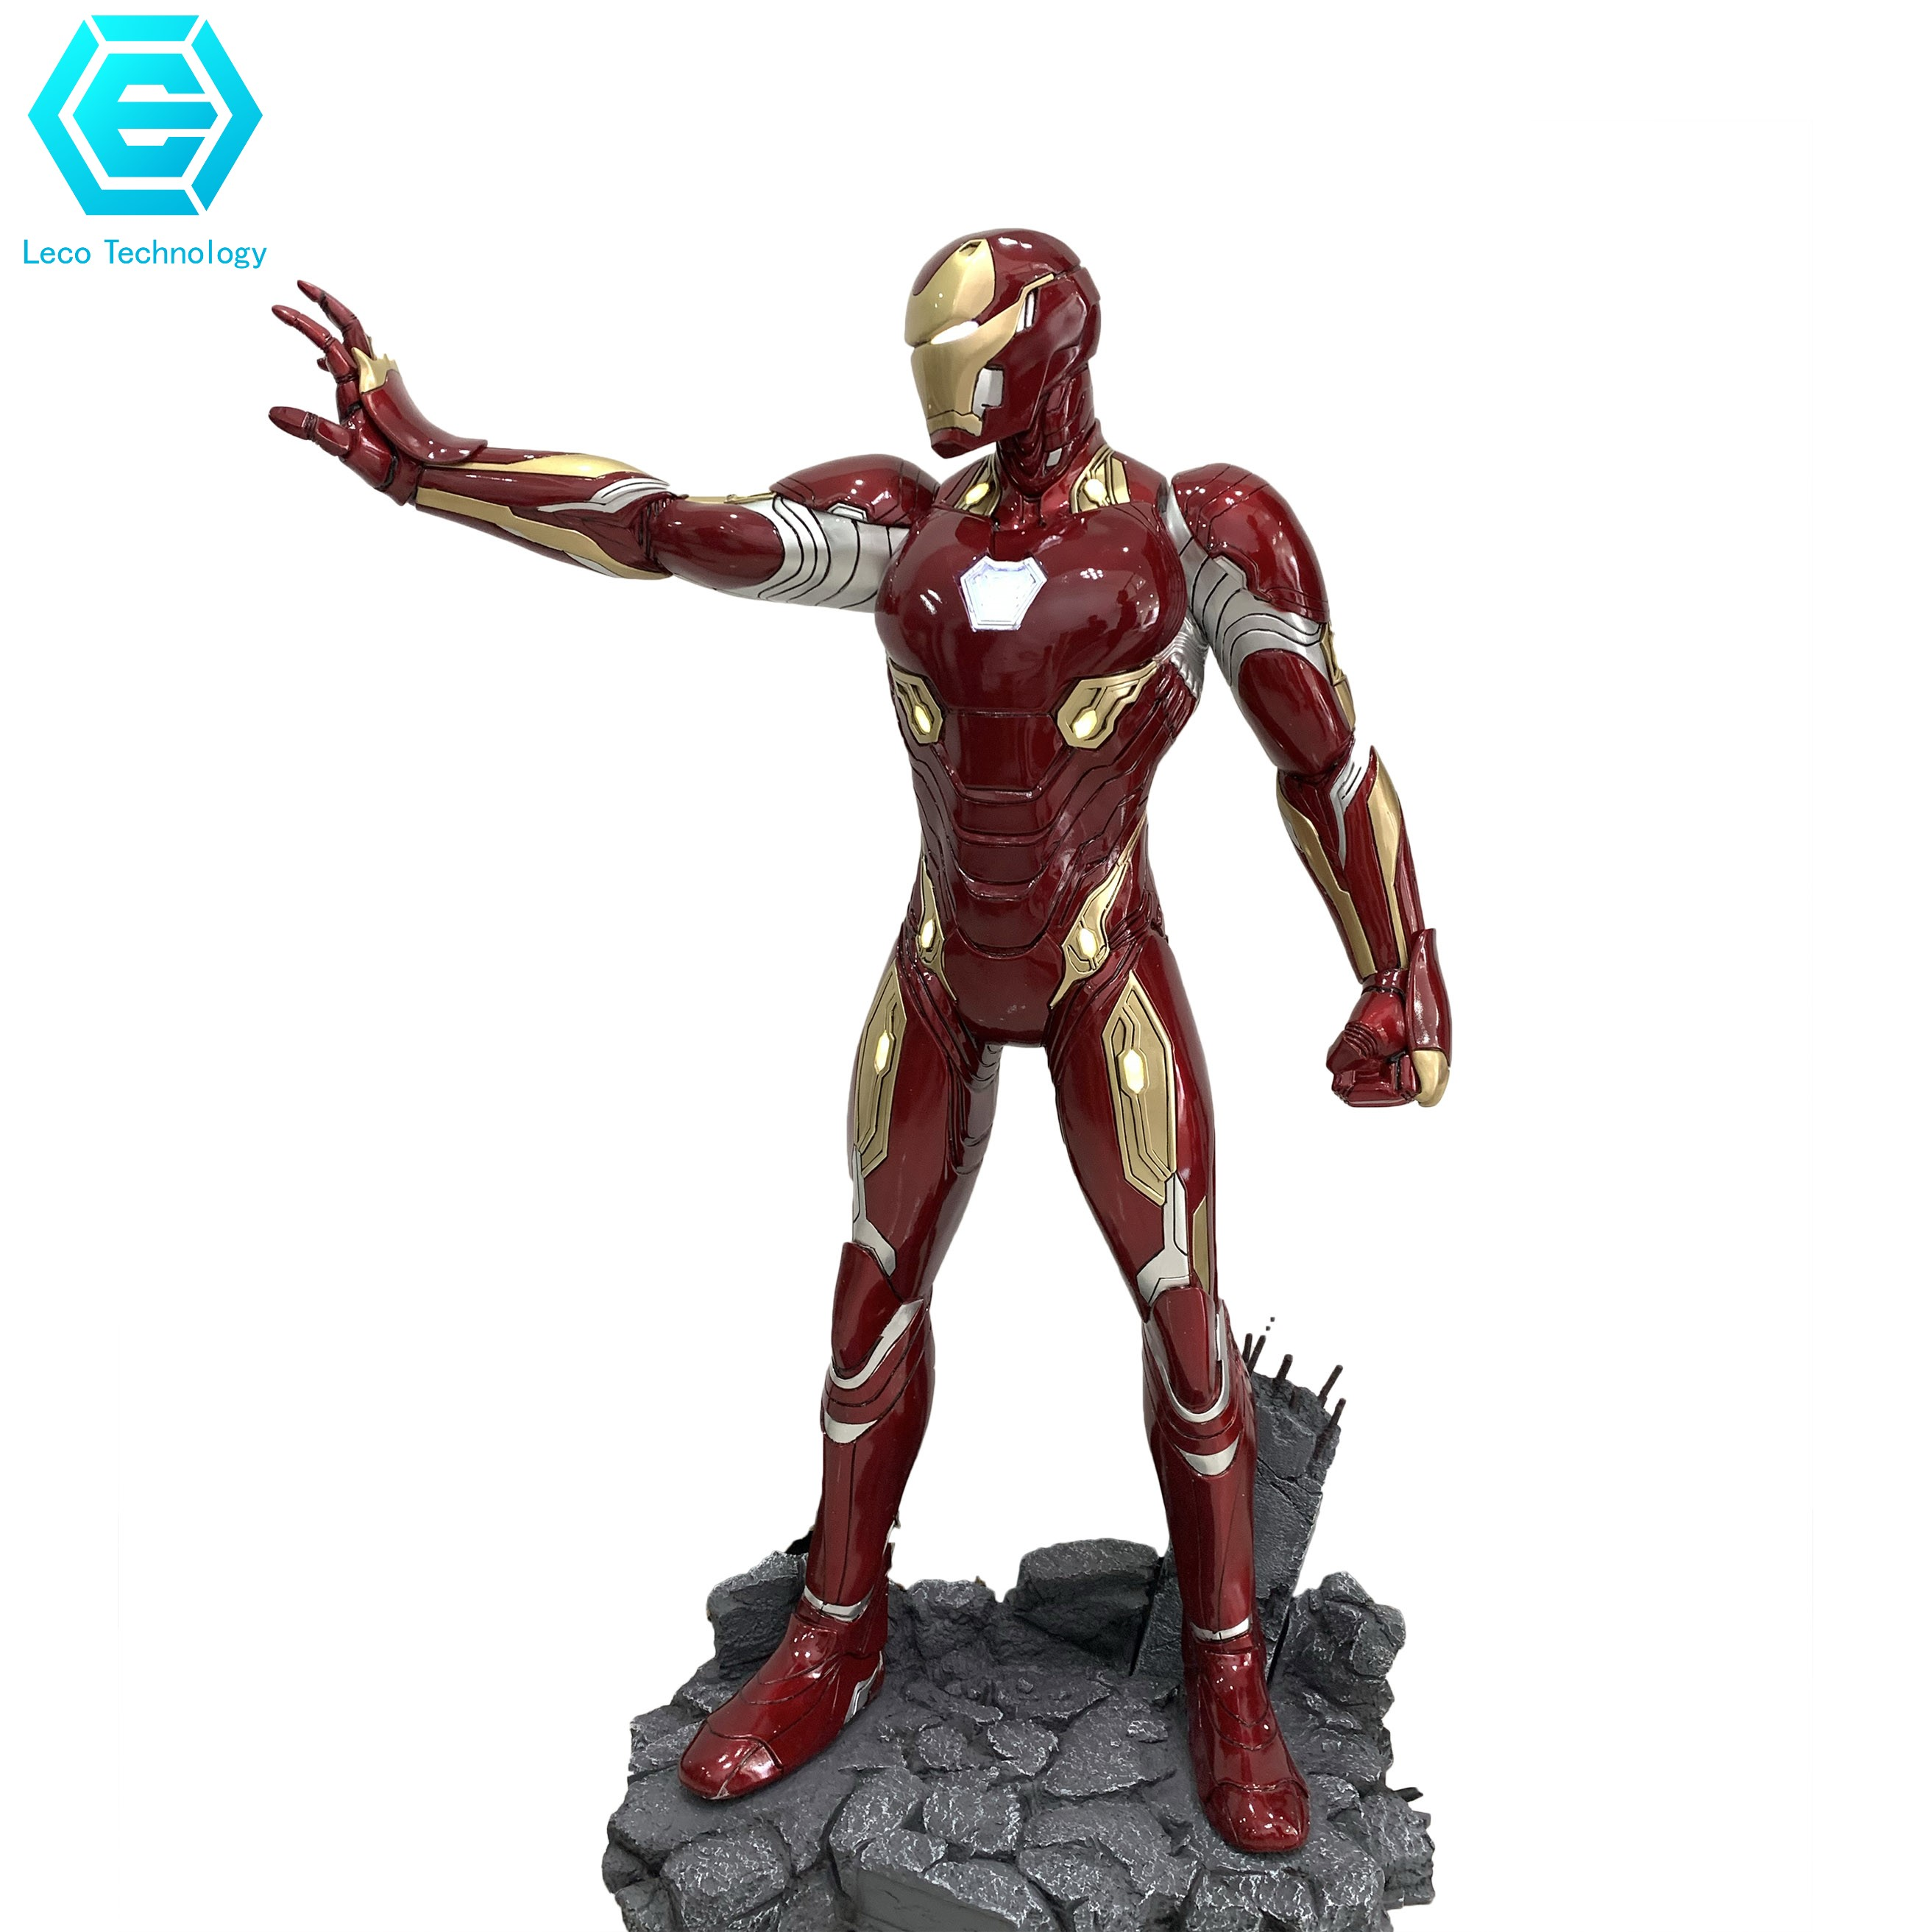 cool thing of movie character mk50 model sculpture decoration